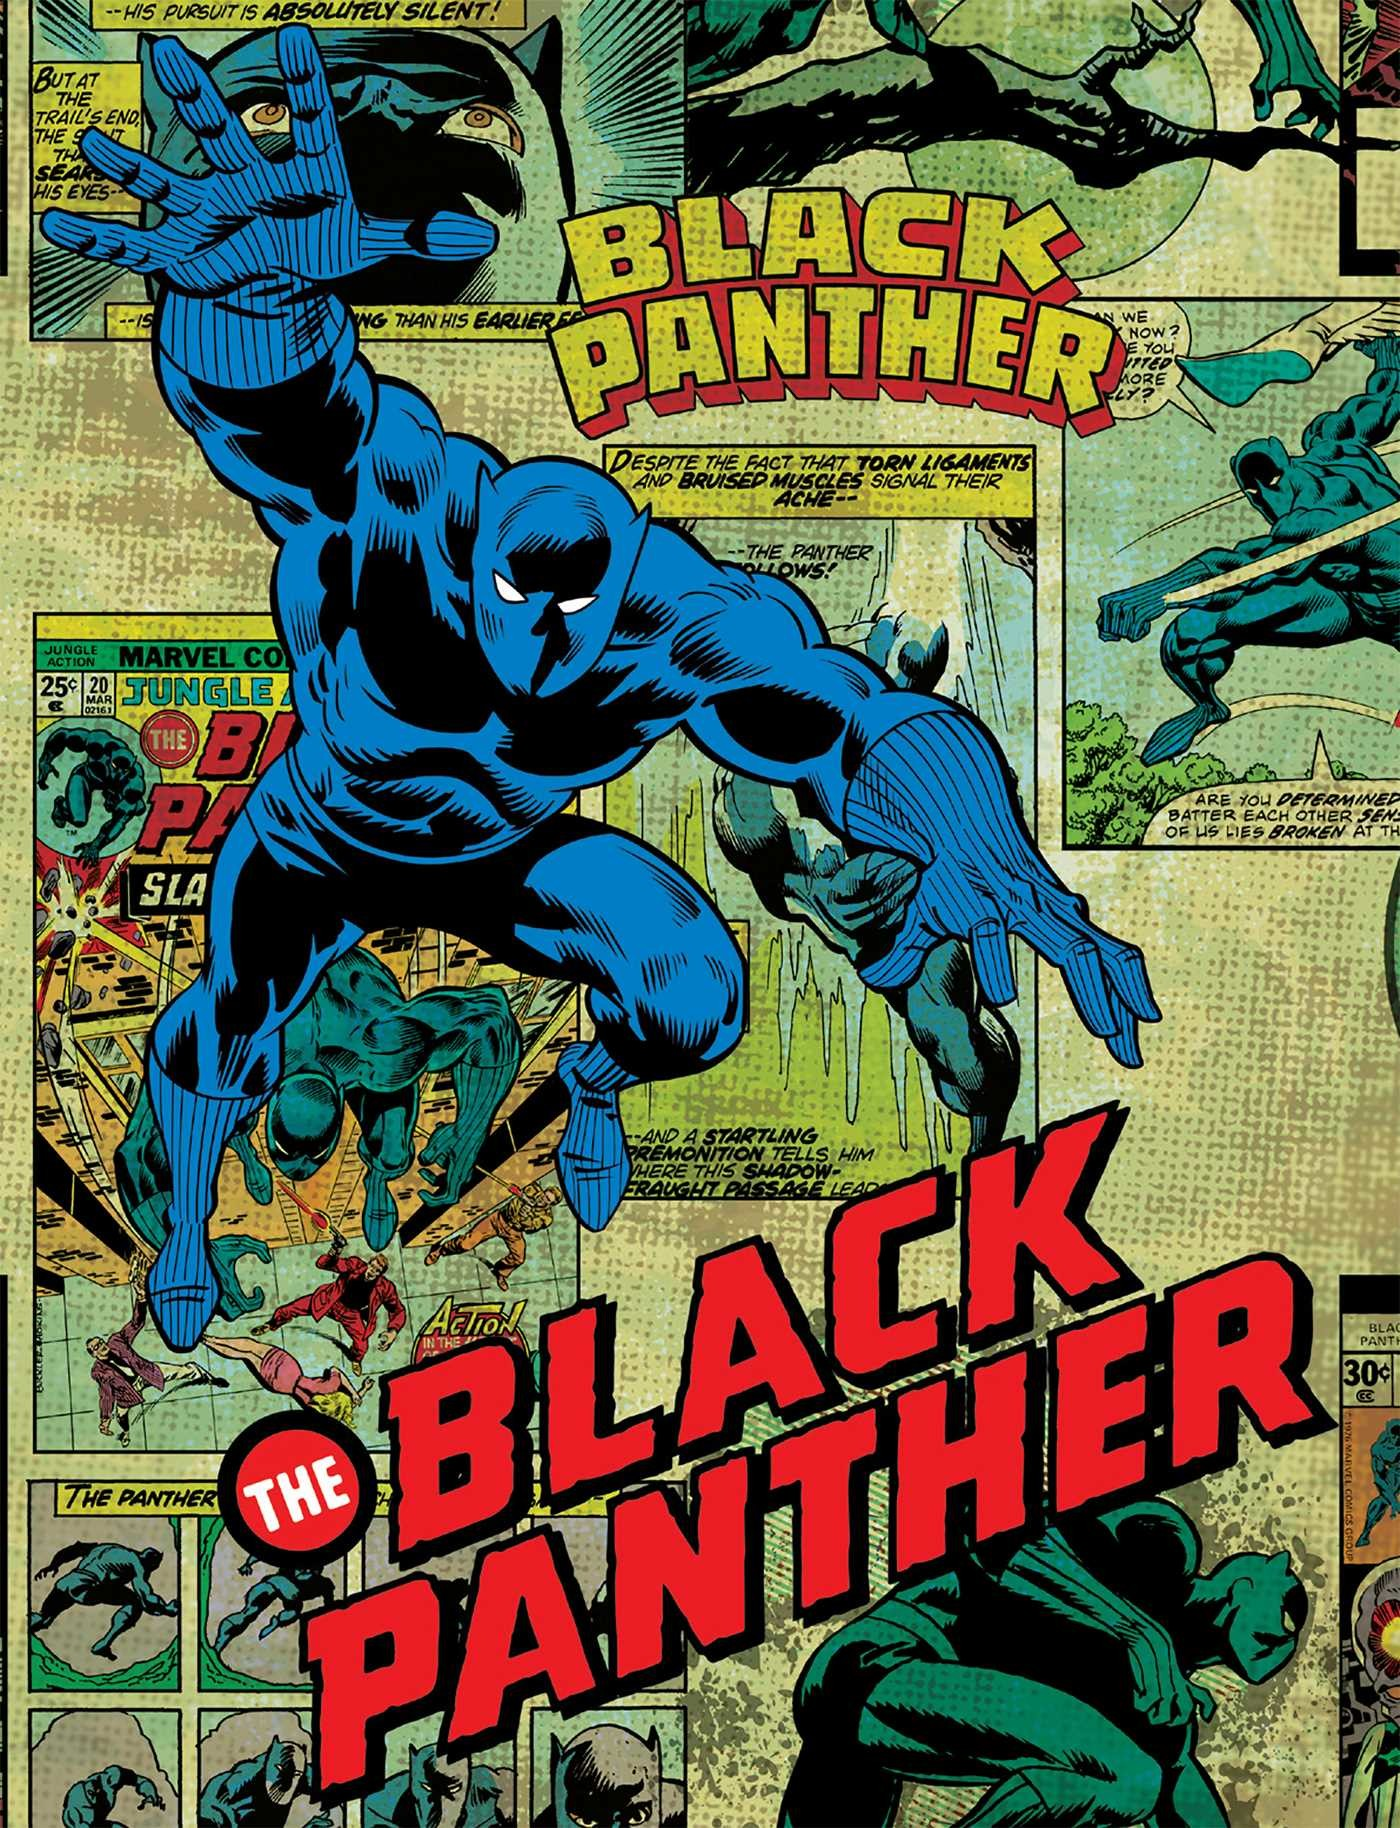 Marvel comics black panther deluxe note card set with keepsake book box 9781683833390.in06